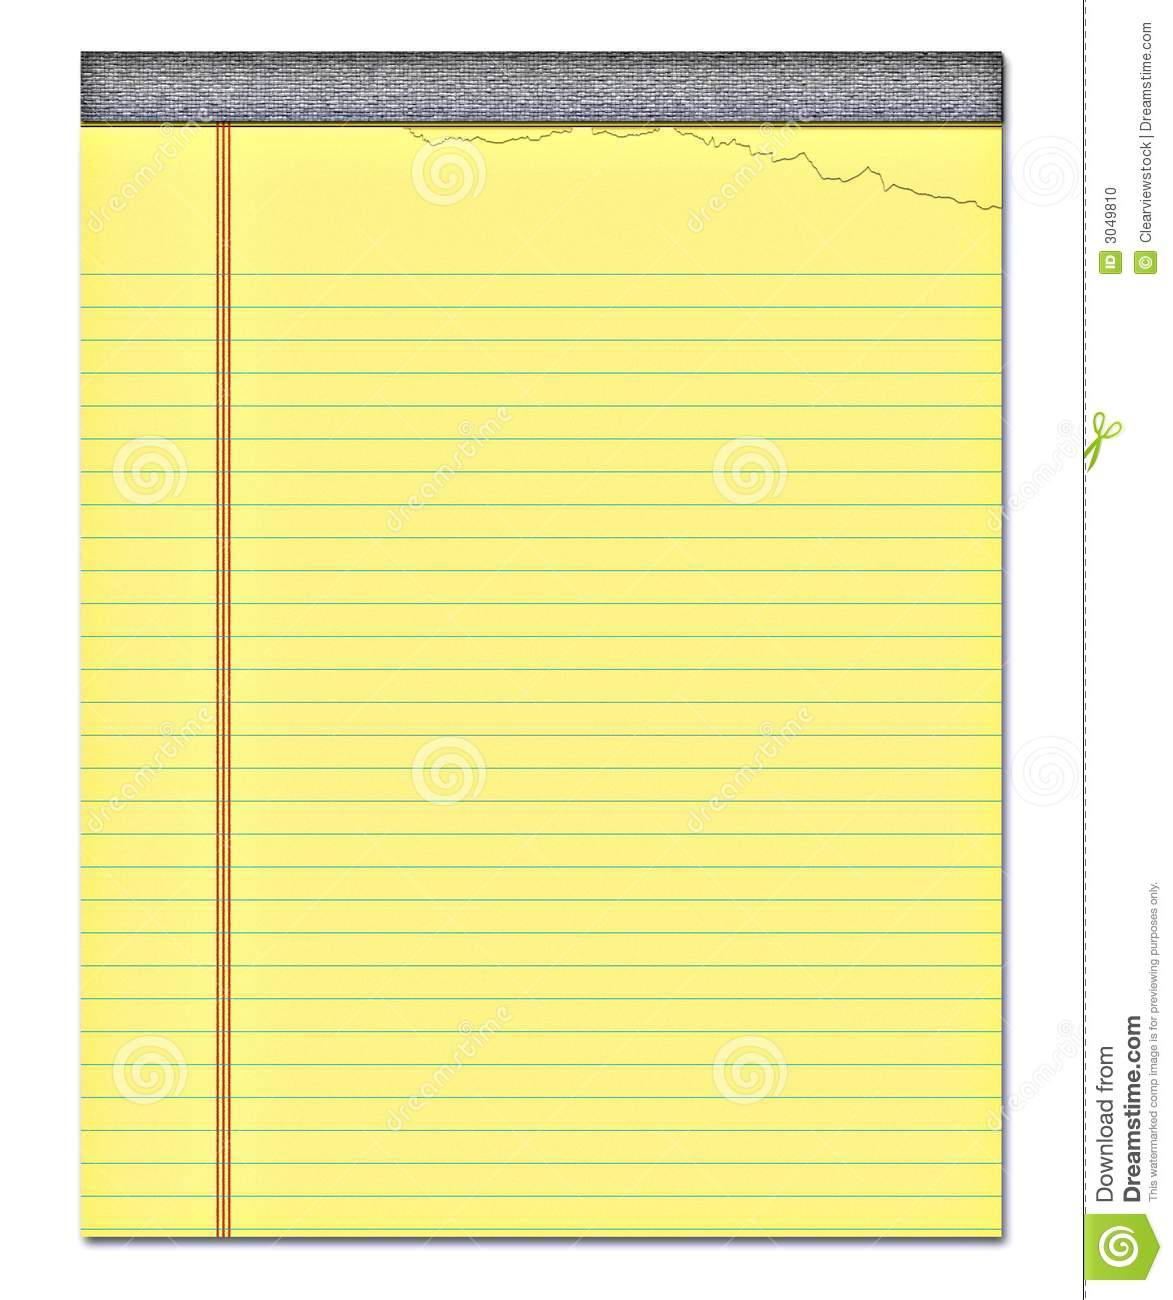 Yellow Notepad Note Paper Photo Image 3049810 – Yellow Notebook Paper Background